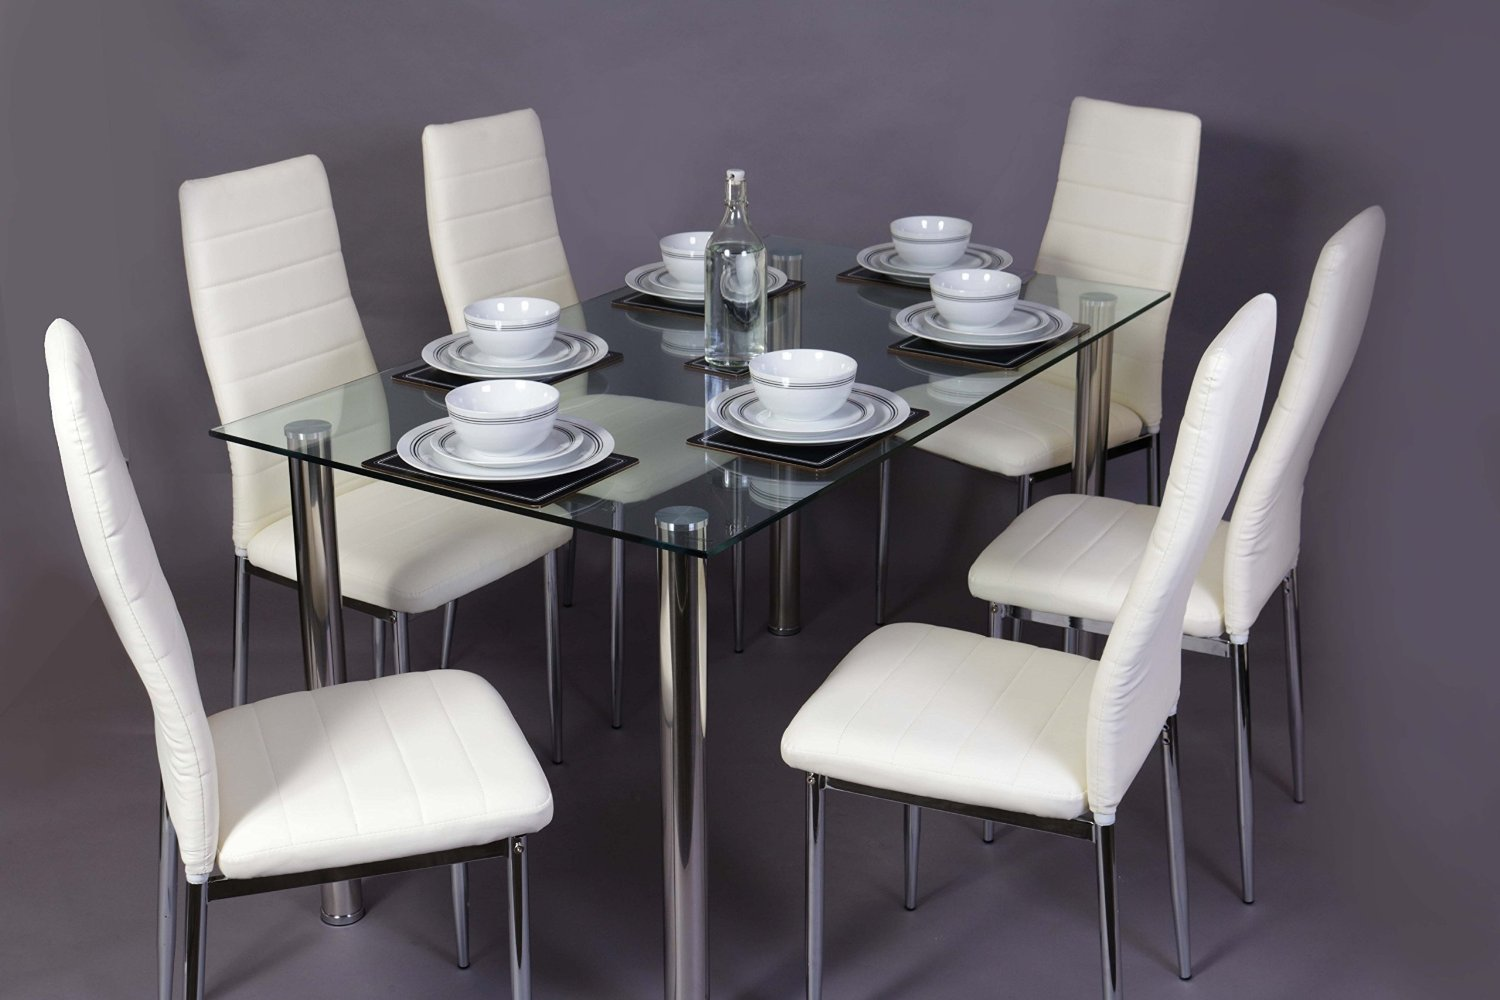 Glass Square Dining Room Table Set And 6 Chairs Faux Leather Chrome Cream Bla